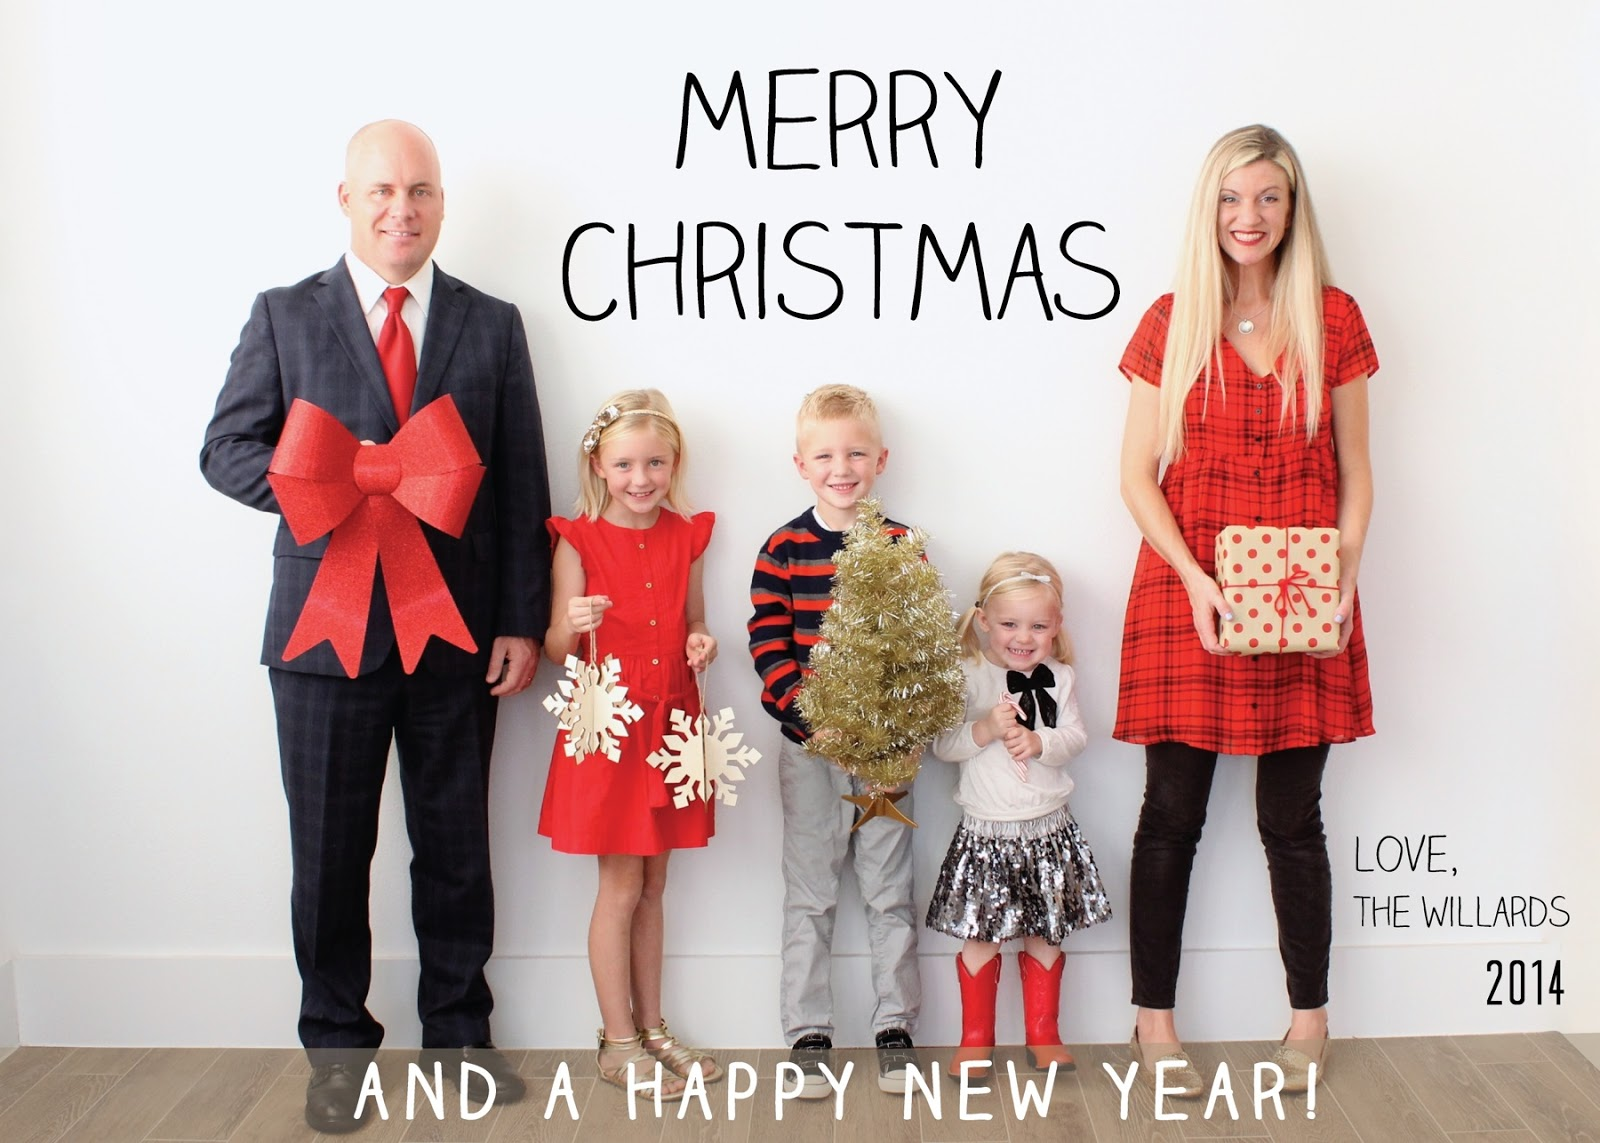 Fashion style Family Great christmas card designs images pictures for lady